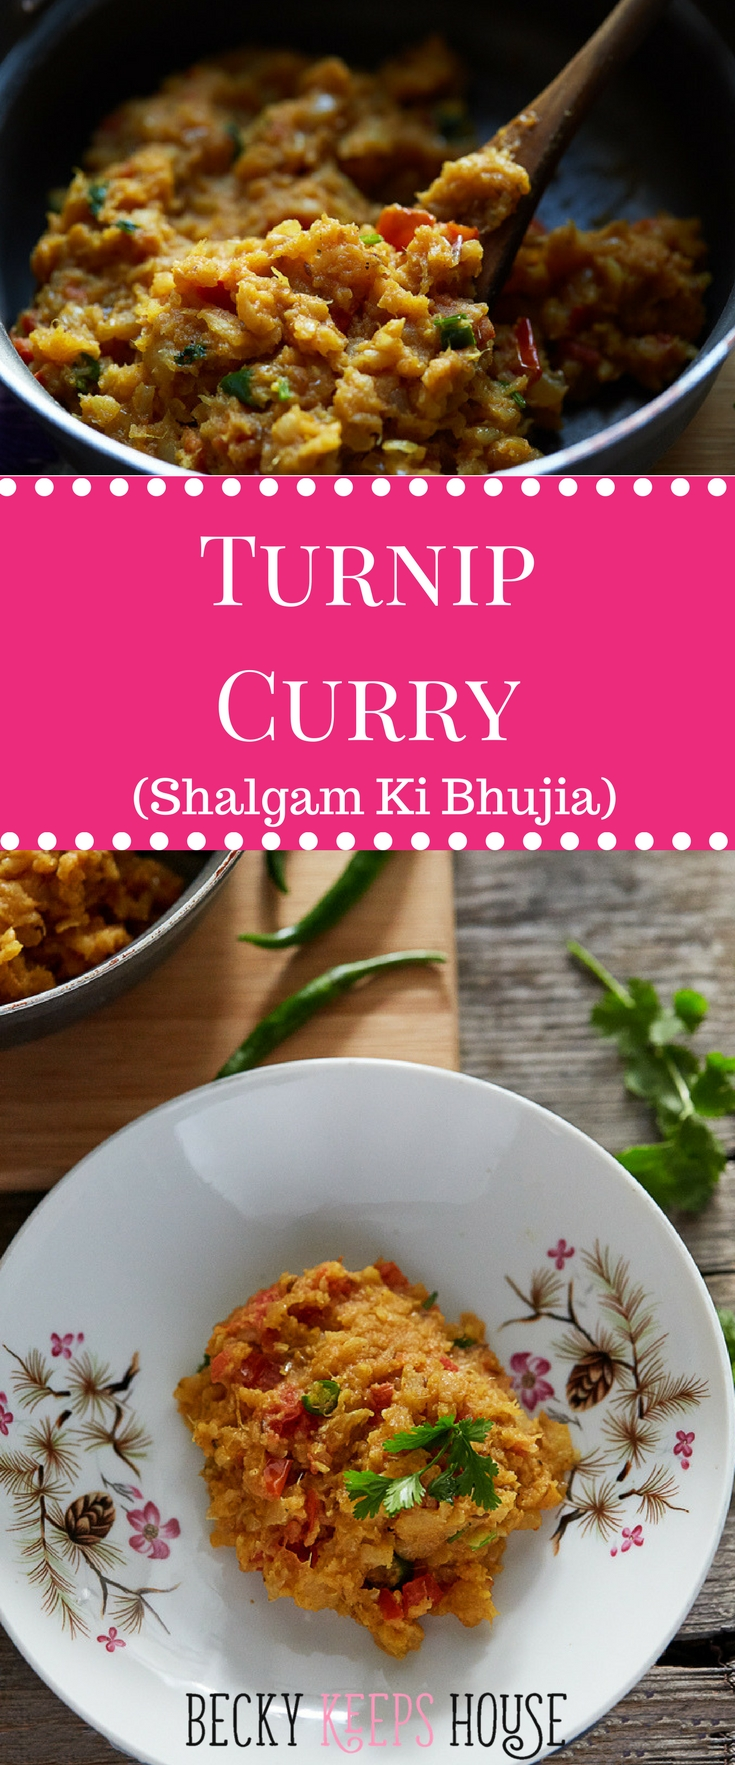 Turnip Curry (Shalgam ki Bhujia) | Becky Keeps House - This turnip curry (shaljam ki bhujia) recipe will have your family calling dibs on the leftovers! A tasty vegetarian recipe with vegan substitution.